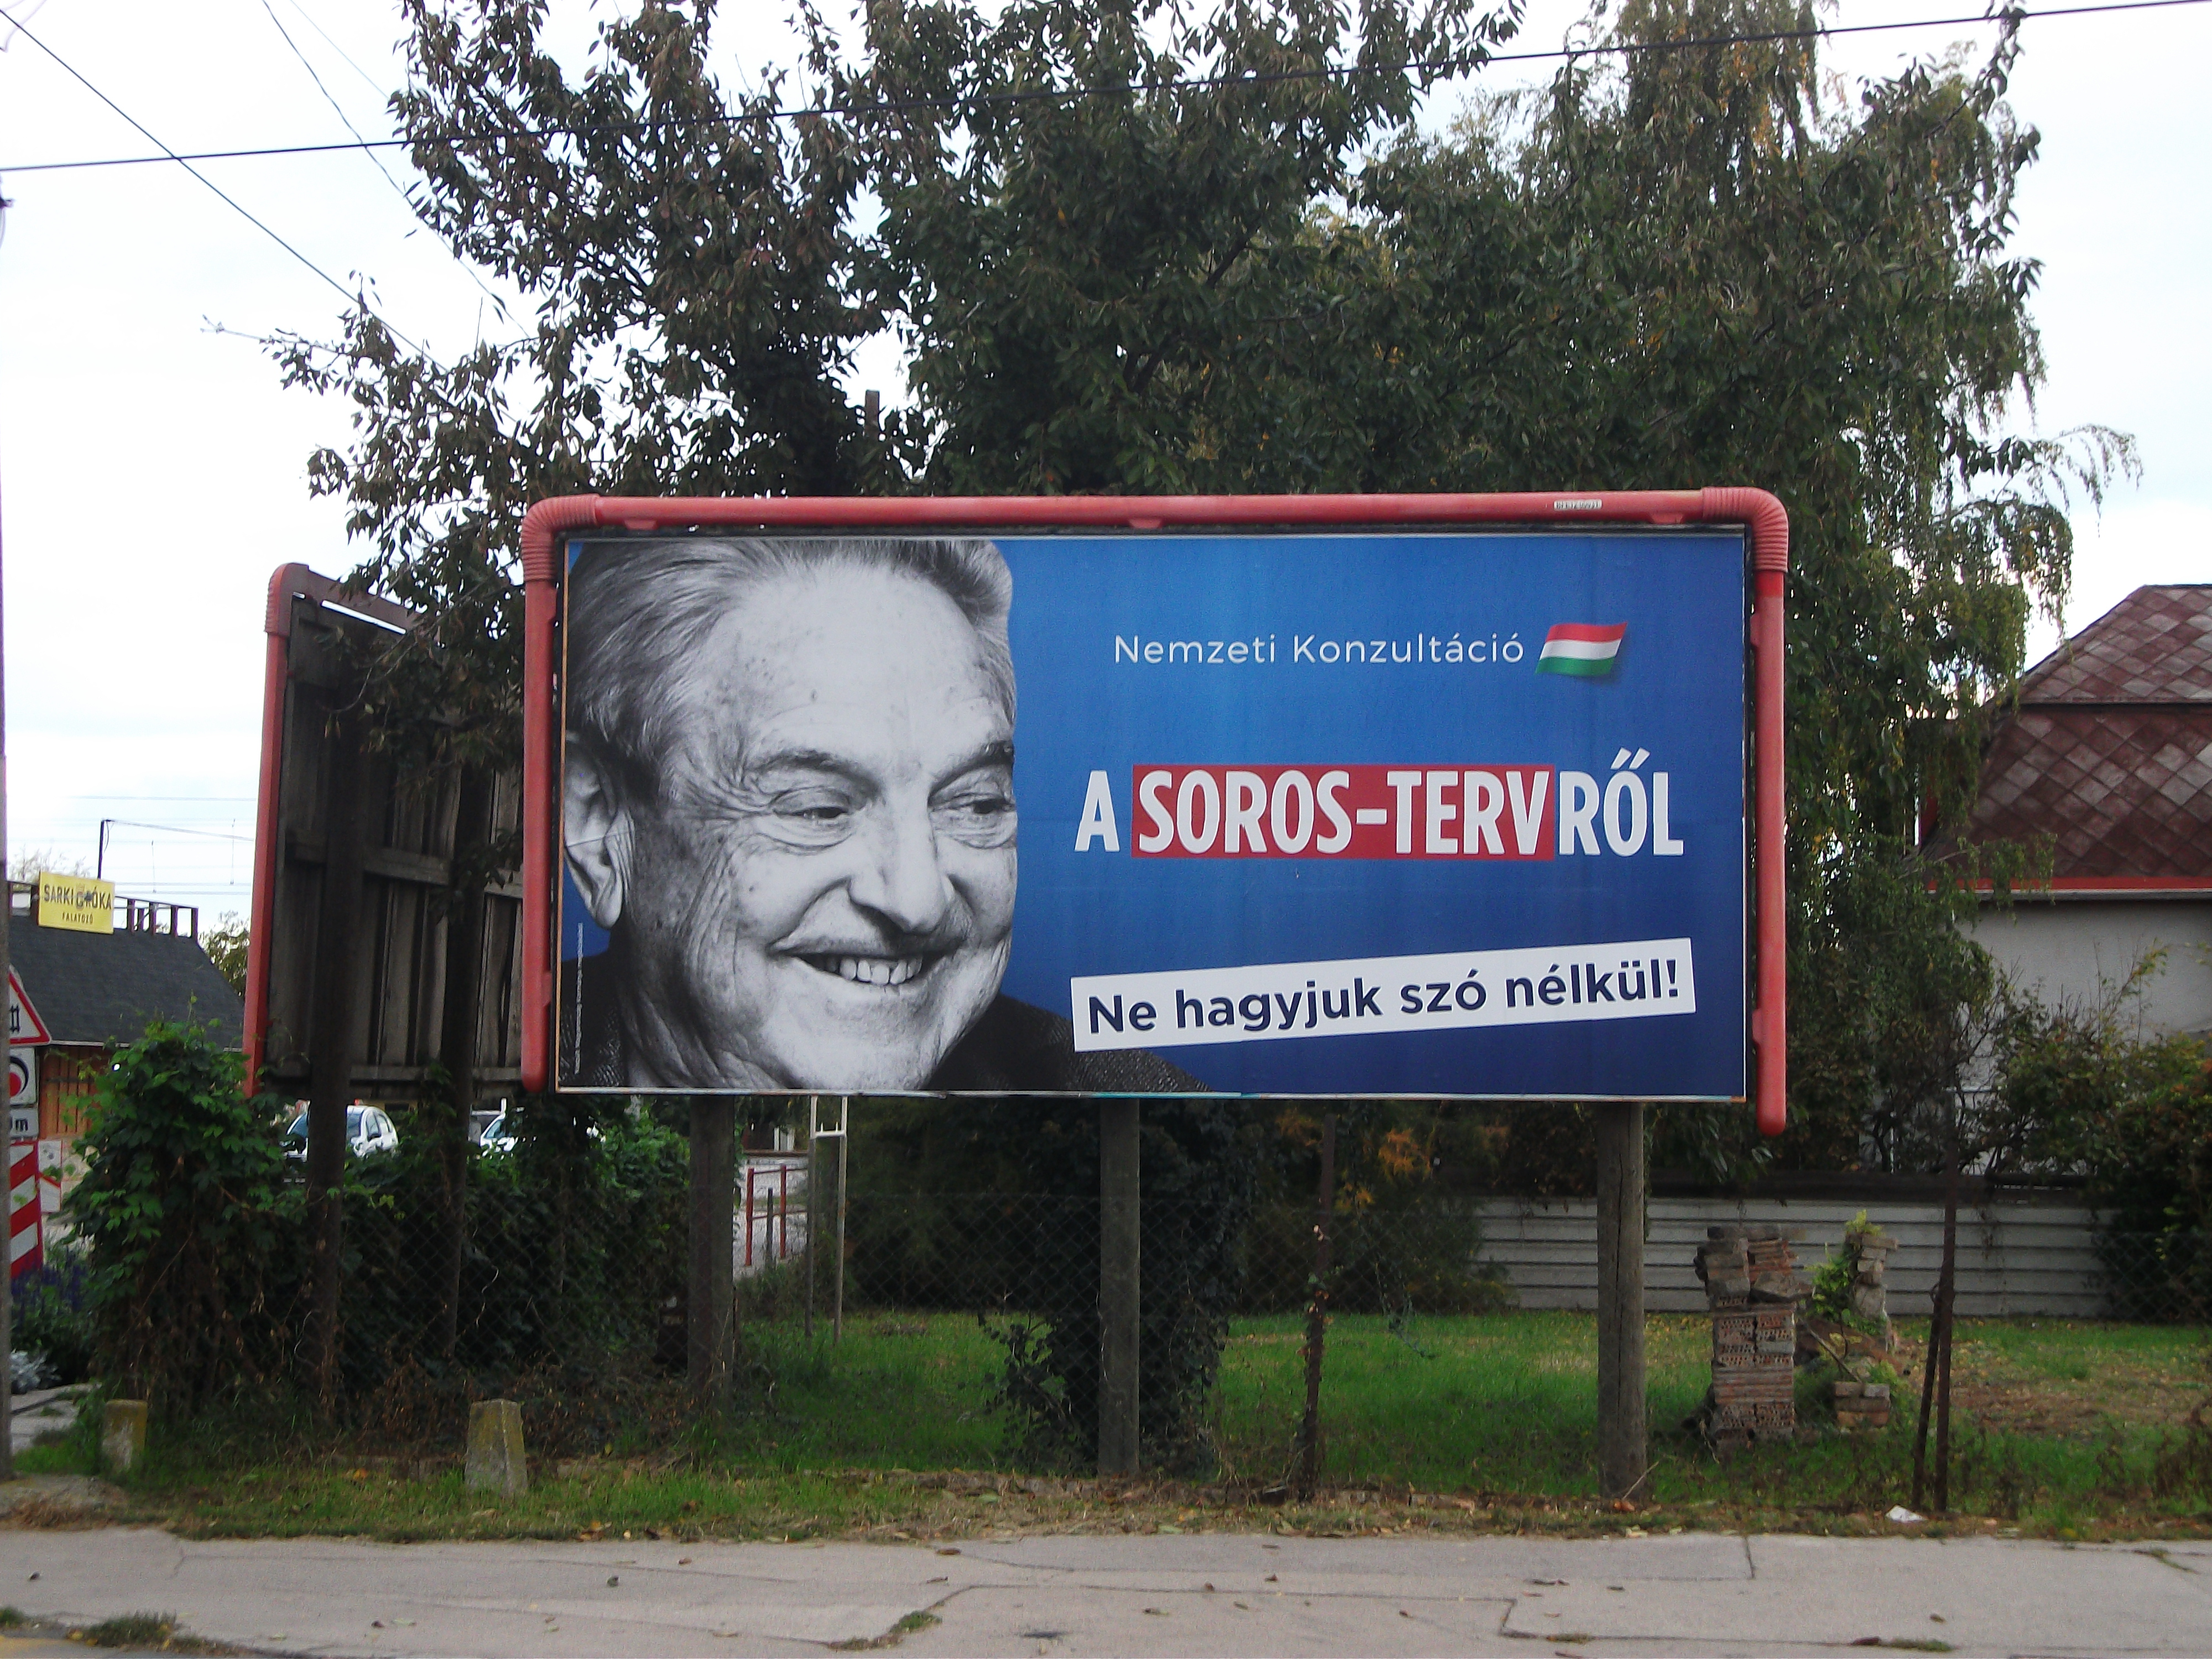 Local Opinion: The End Of Anti-Soros Propaganda In Hungary?